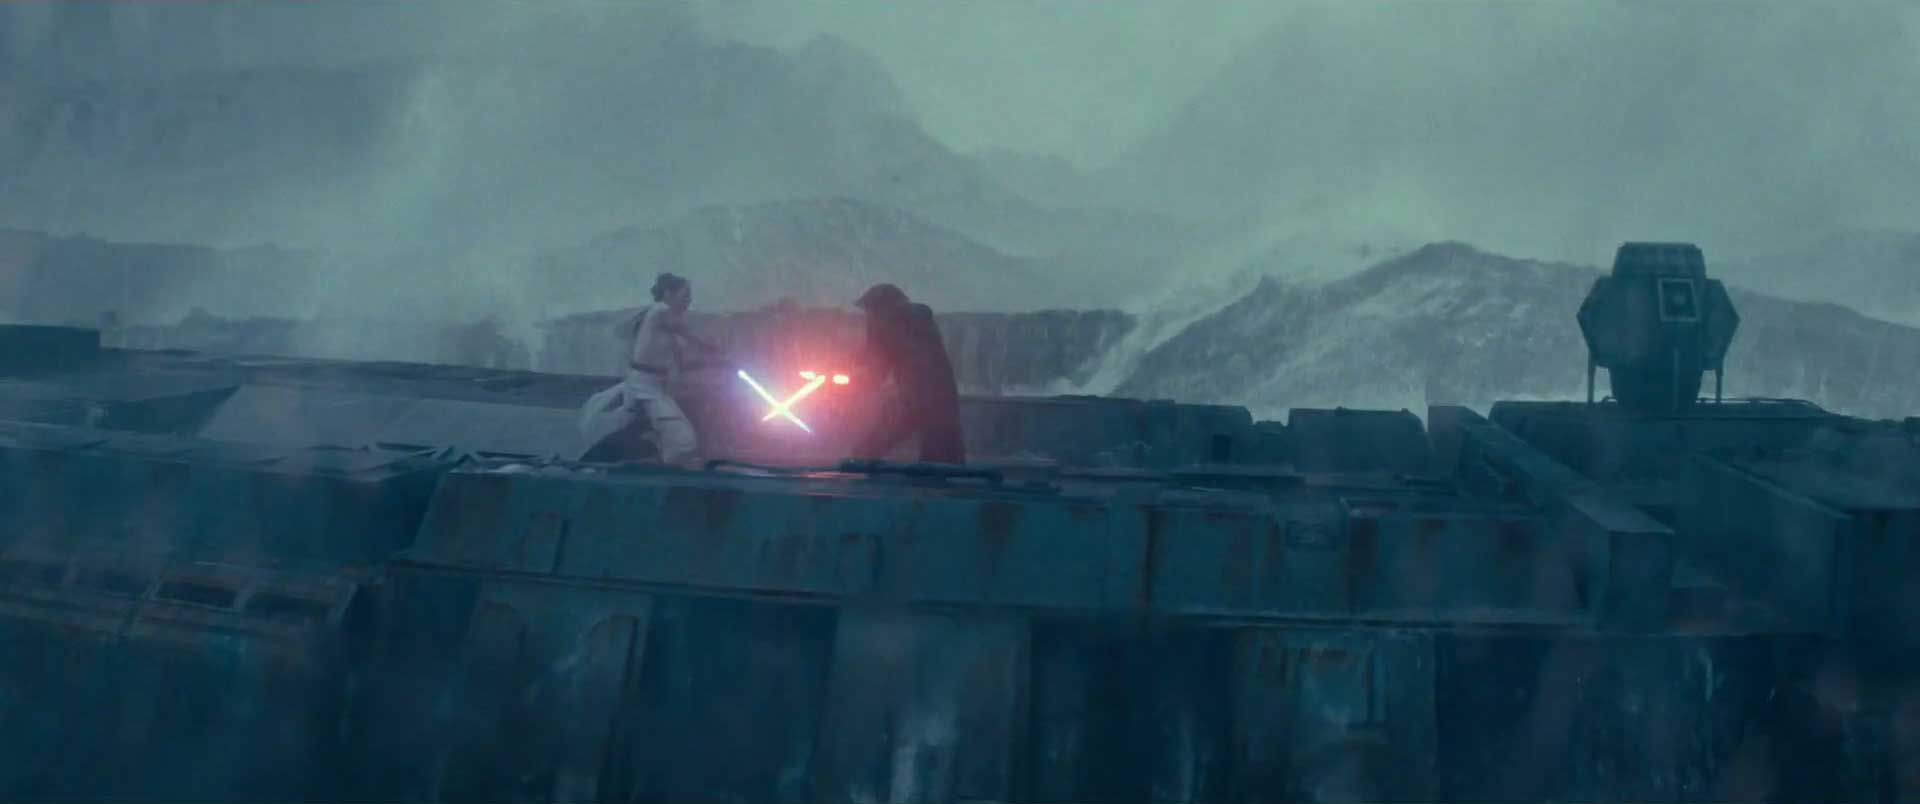 star wars trailer - photo #50